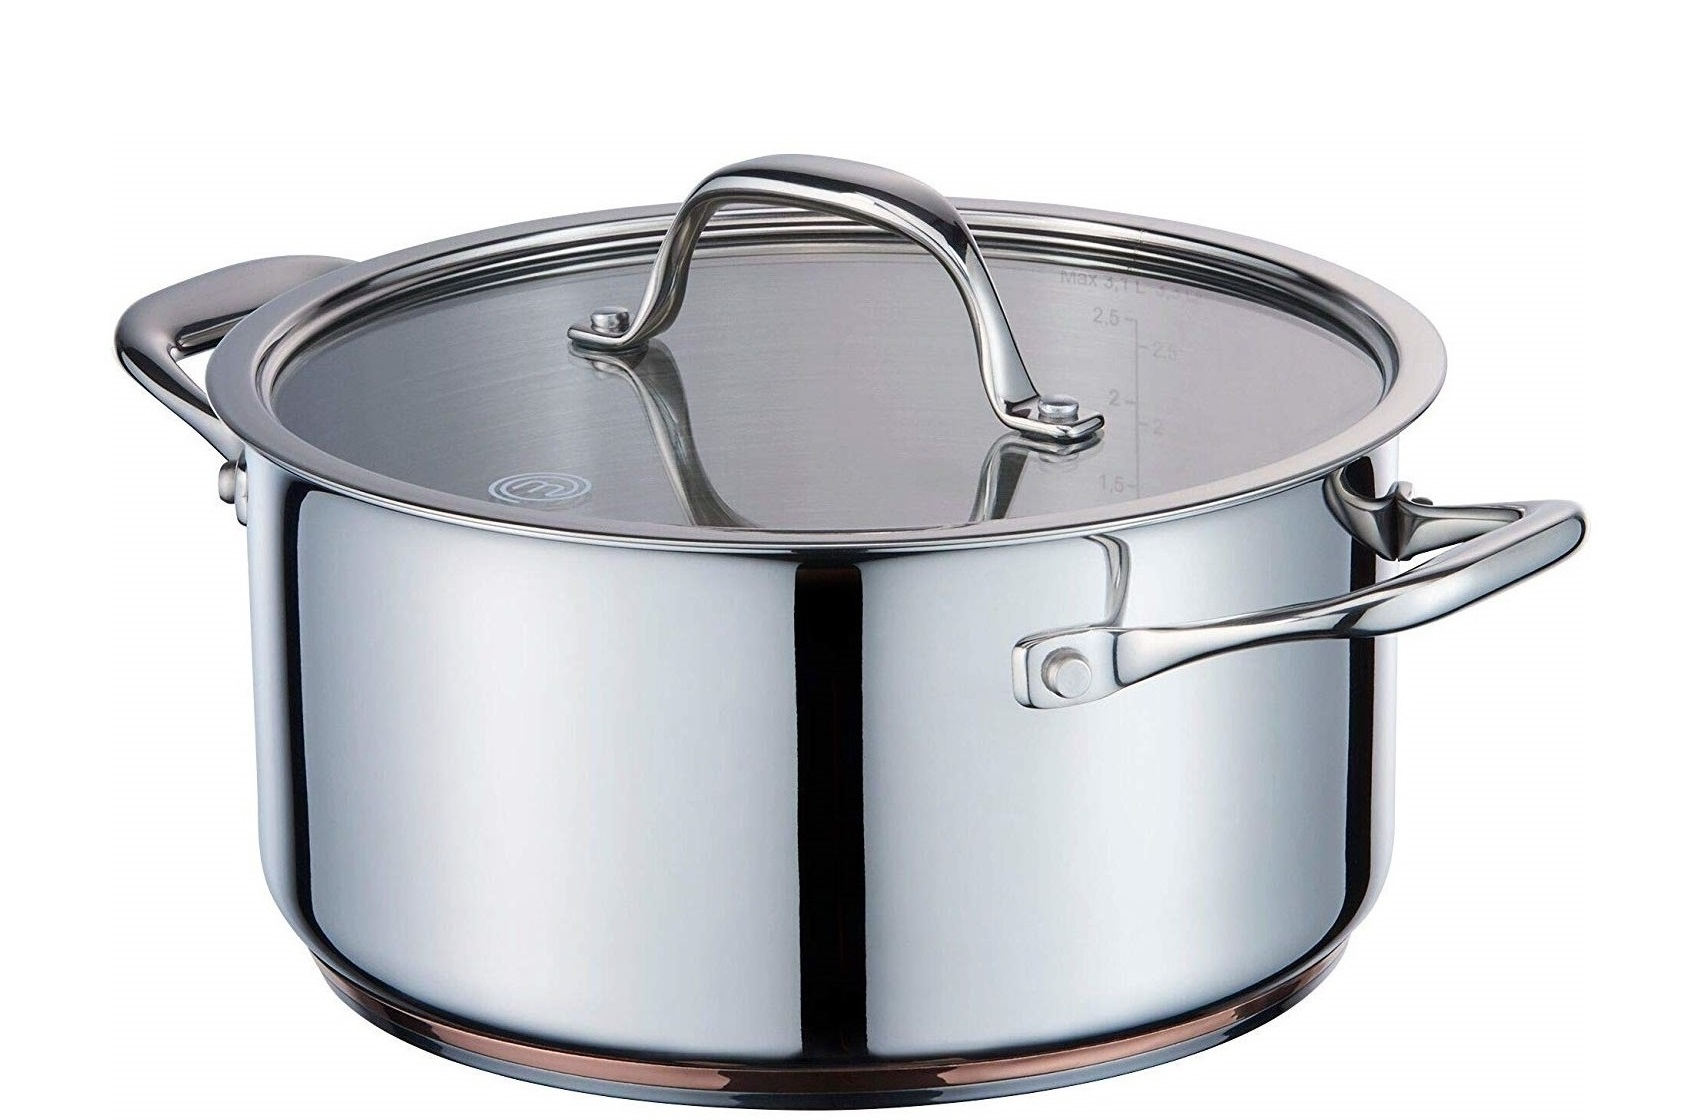 MasterChef Kookpan Copperline Cookware 4.7 Liter